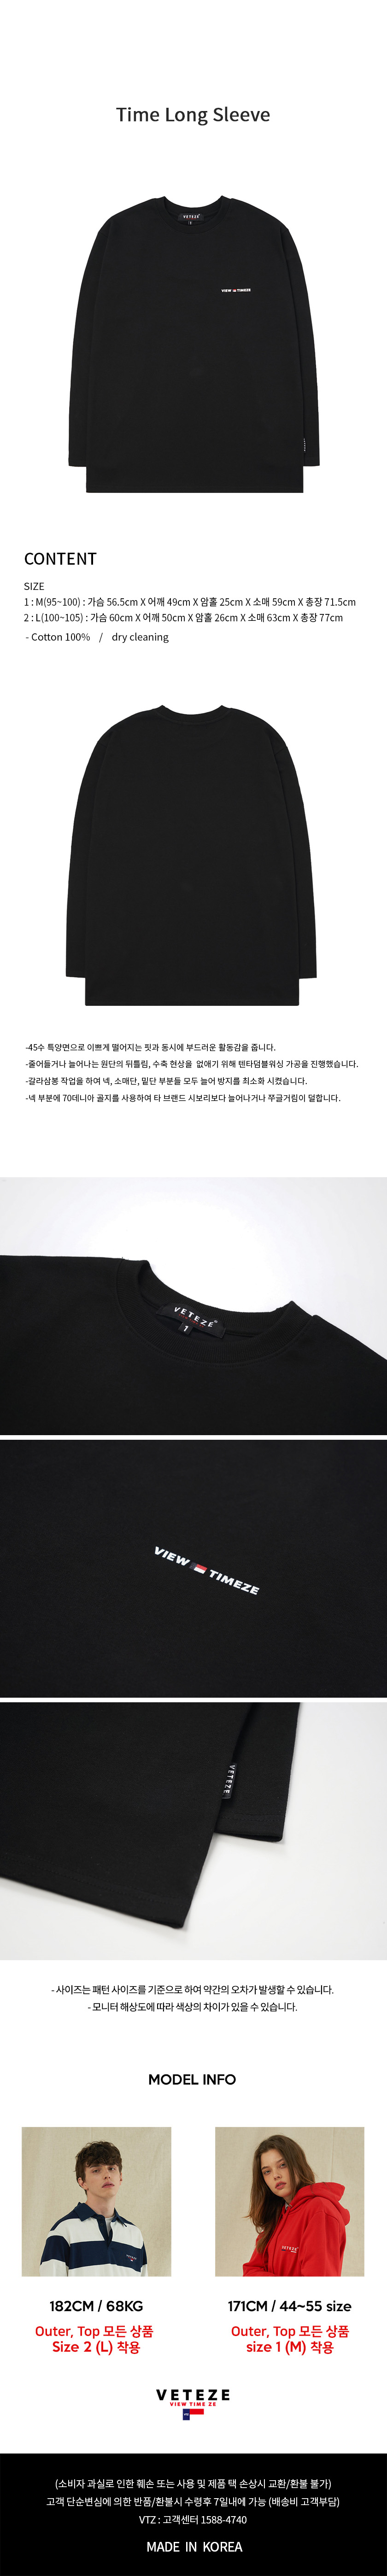 10.Time%20Long%20Sleeve%20(black)_detail840_2.JPG